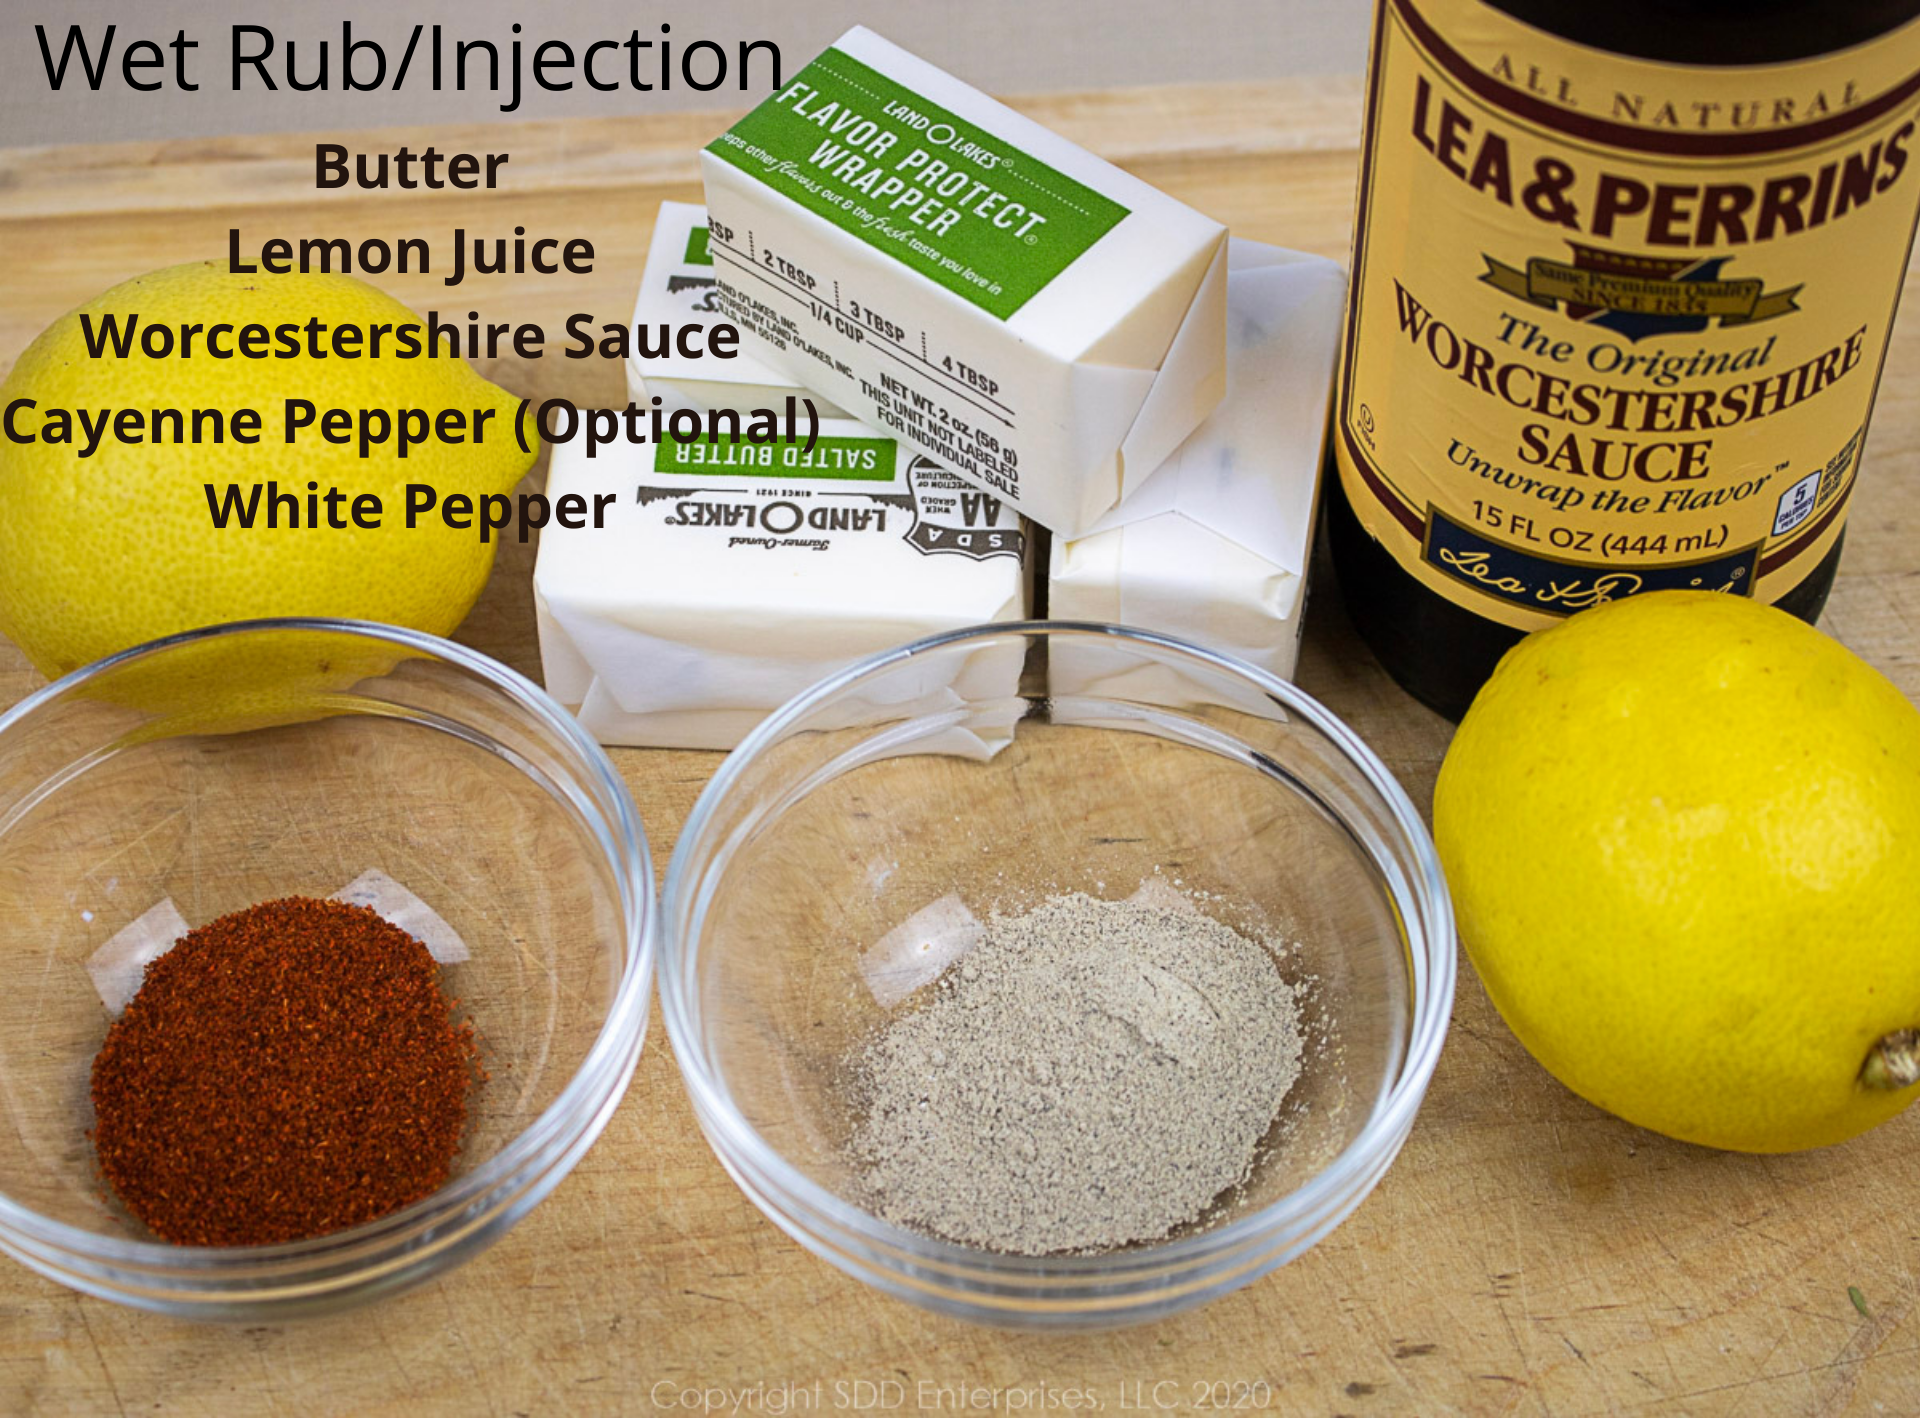 ingredients for wet rub/injection for smoked turkey